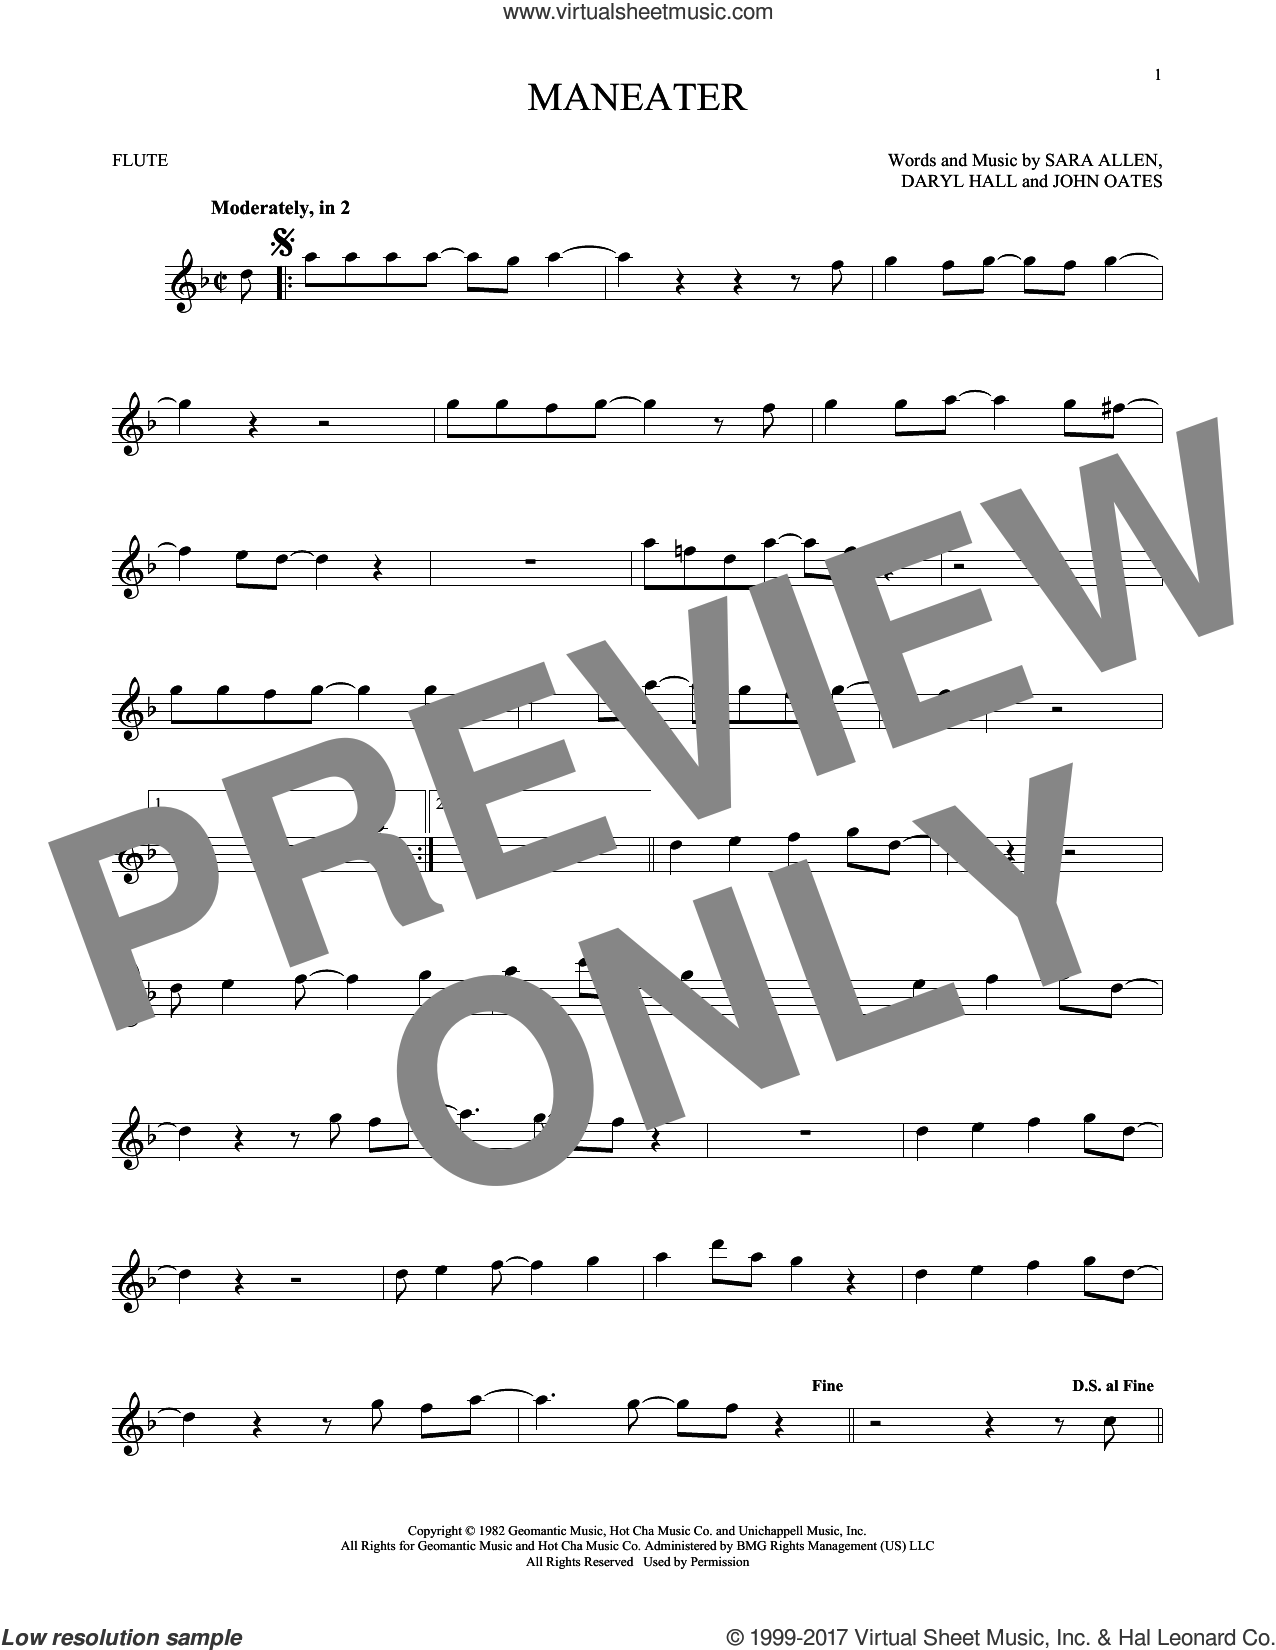 Maneater sheet music for flute solo by Daryl Hall, Hall and Oates, John Oates and Sara Allen, intermediate skill level